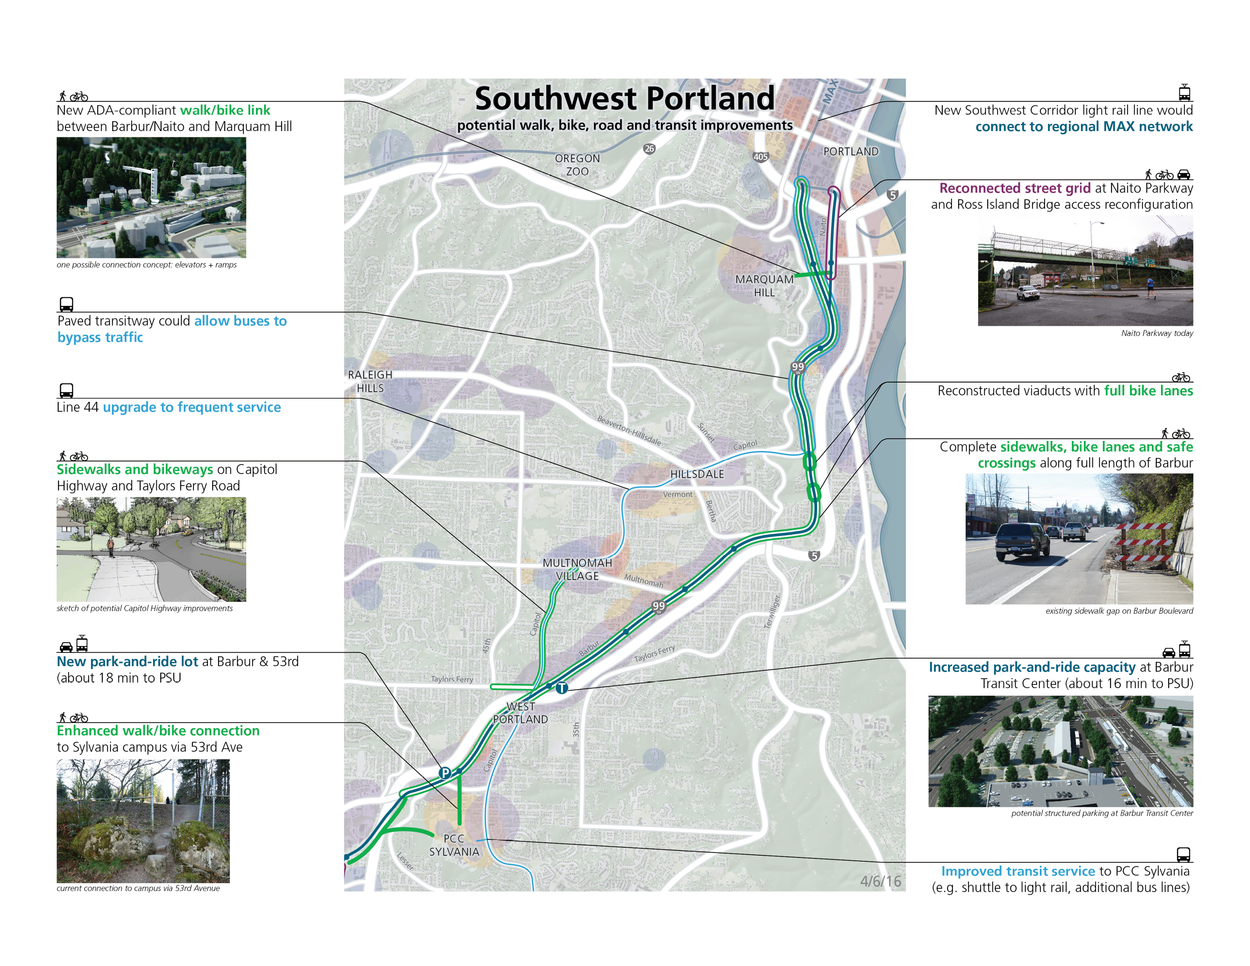 Map of potential walk, bike, road and transit improvements in Southwest Portland